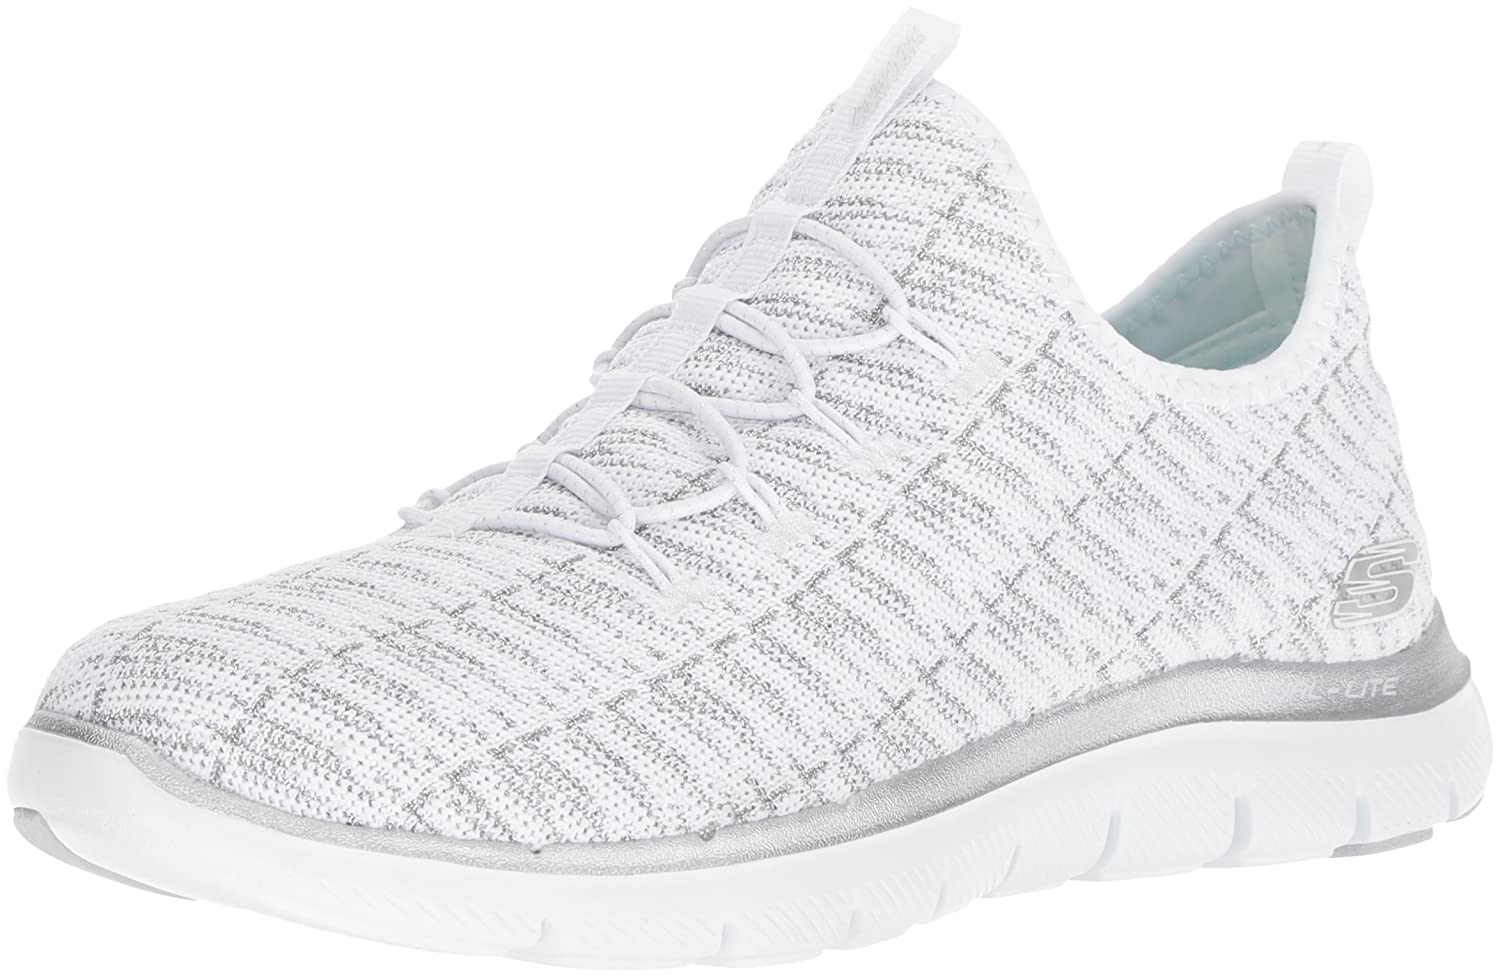 Skechers Women's Flex Appeal 2.0 Insight Sneaker B01MSPP5L8 9 B(M) US|White/Silver